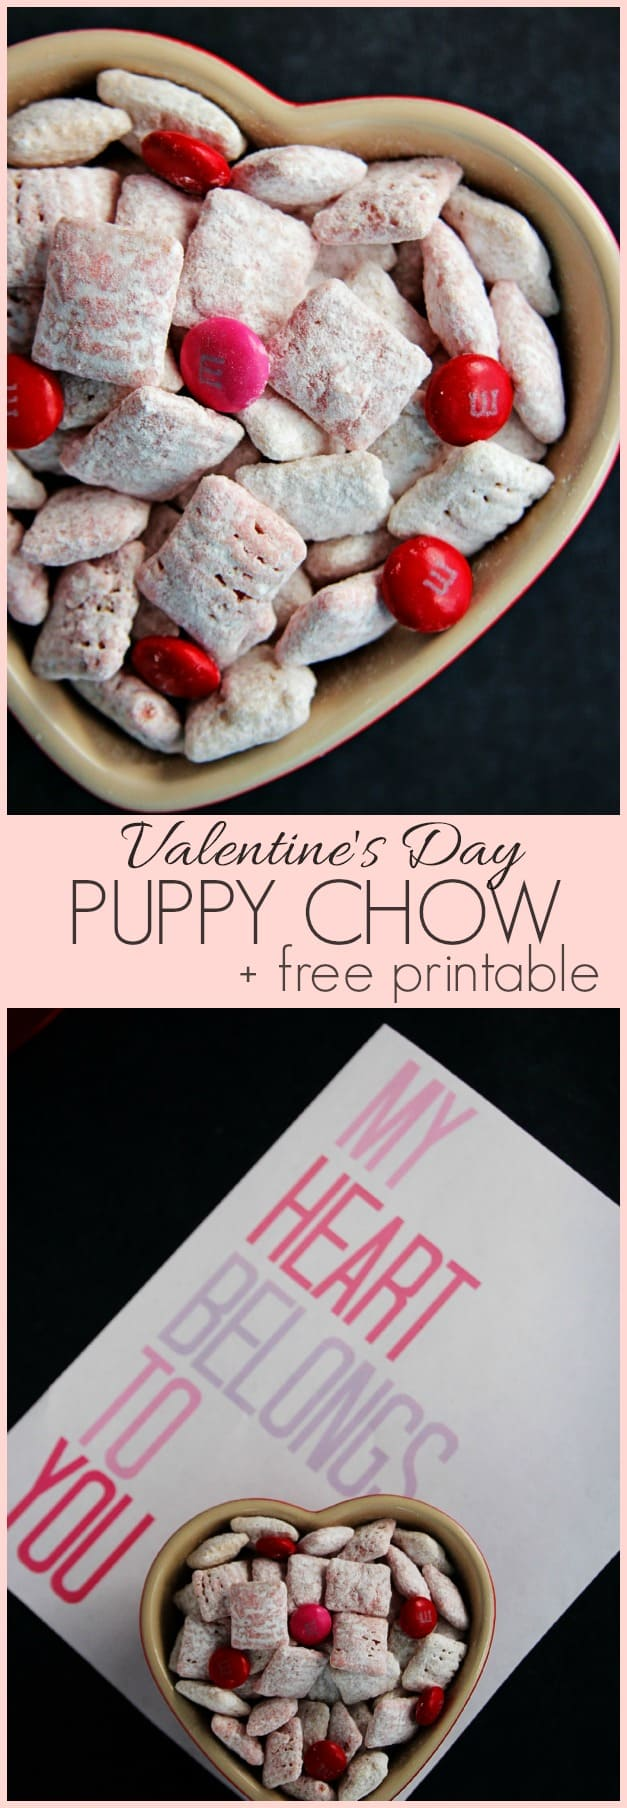 Valentines Day Puppy Chow plus a free printable Valentines Day Puppy Chow + Free Printable